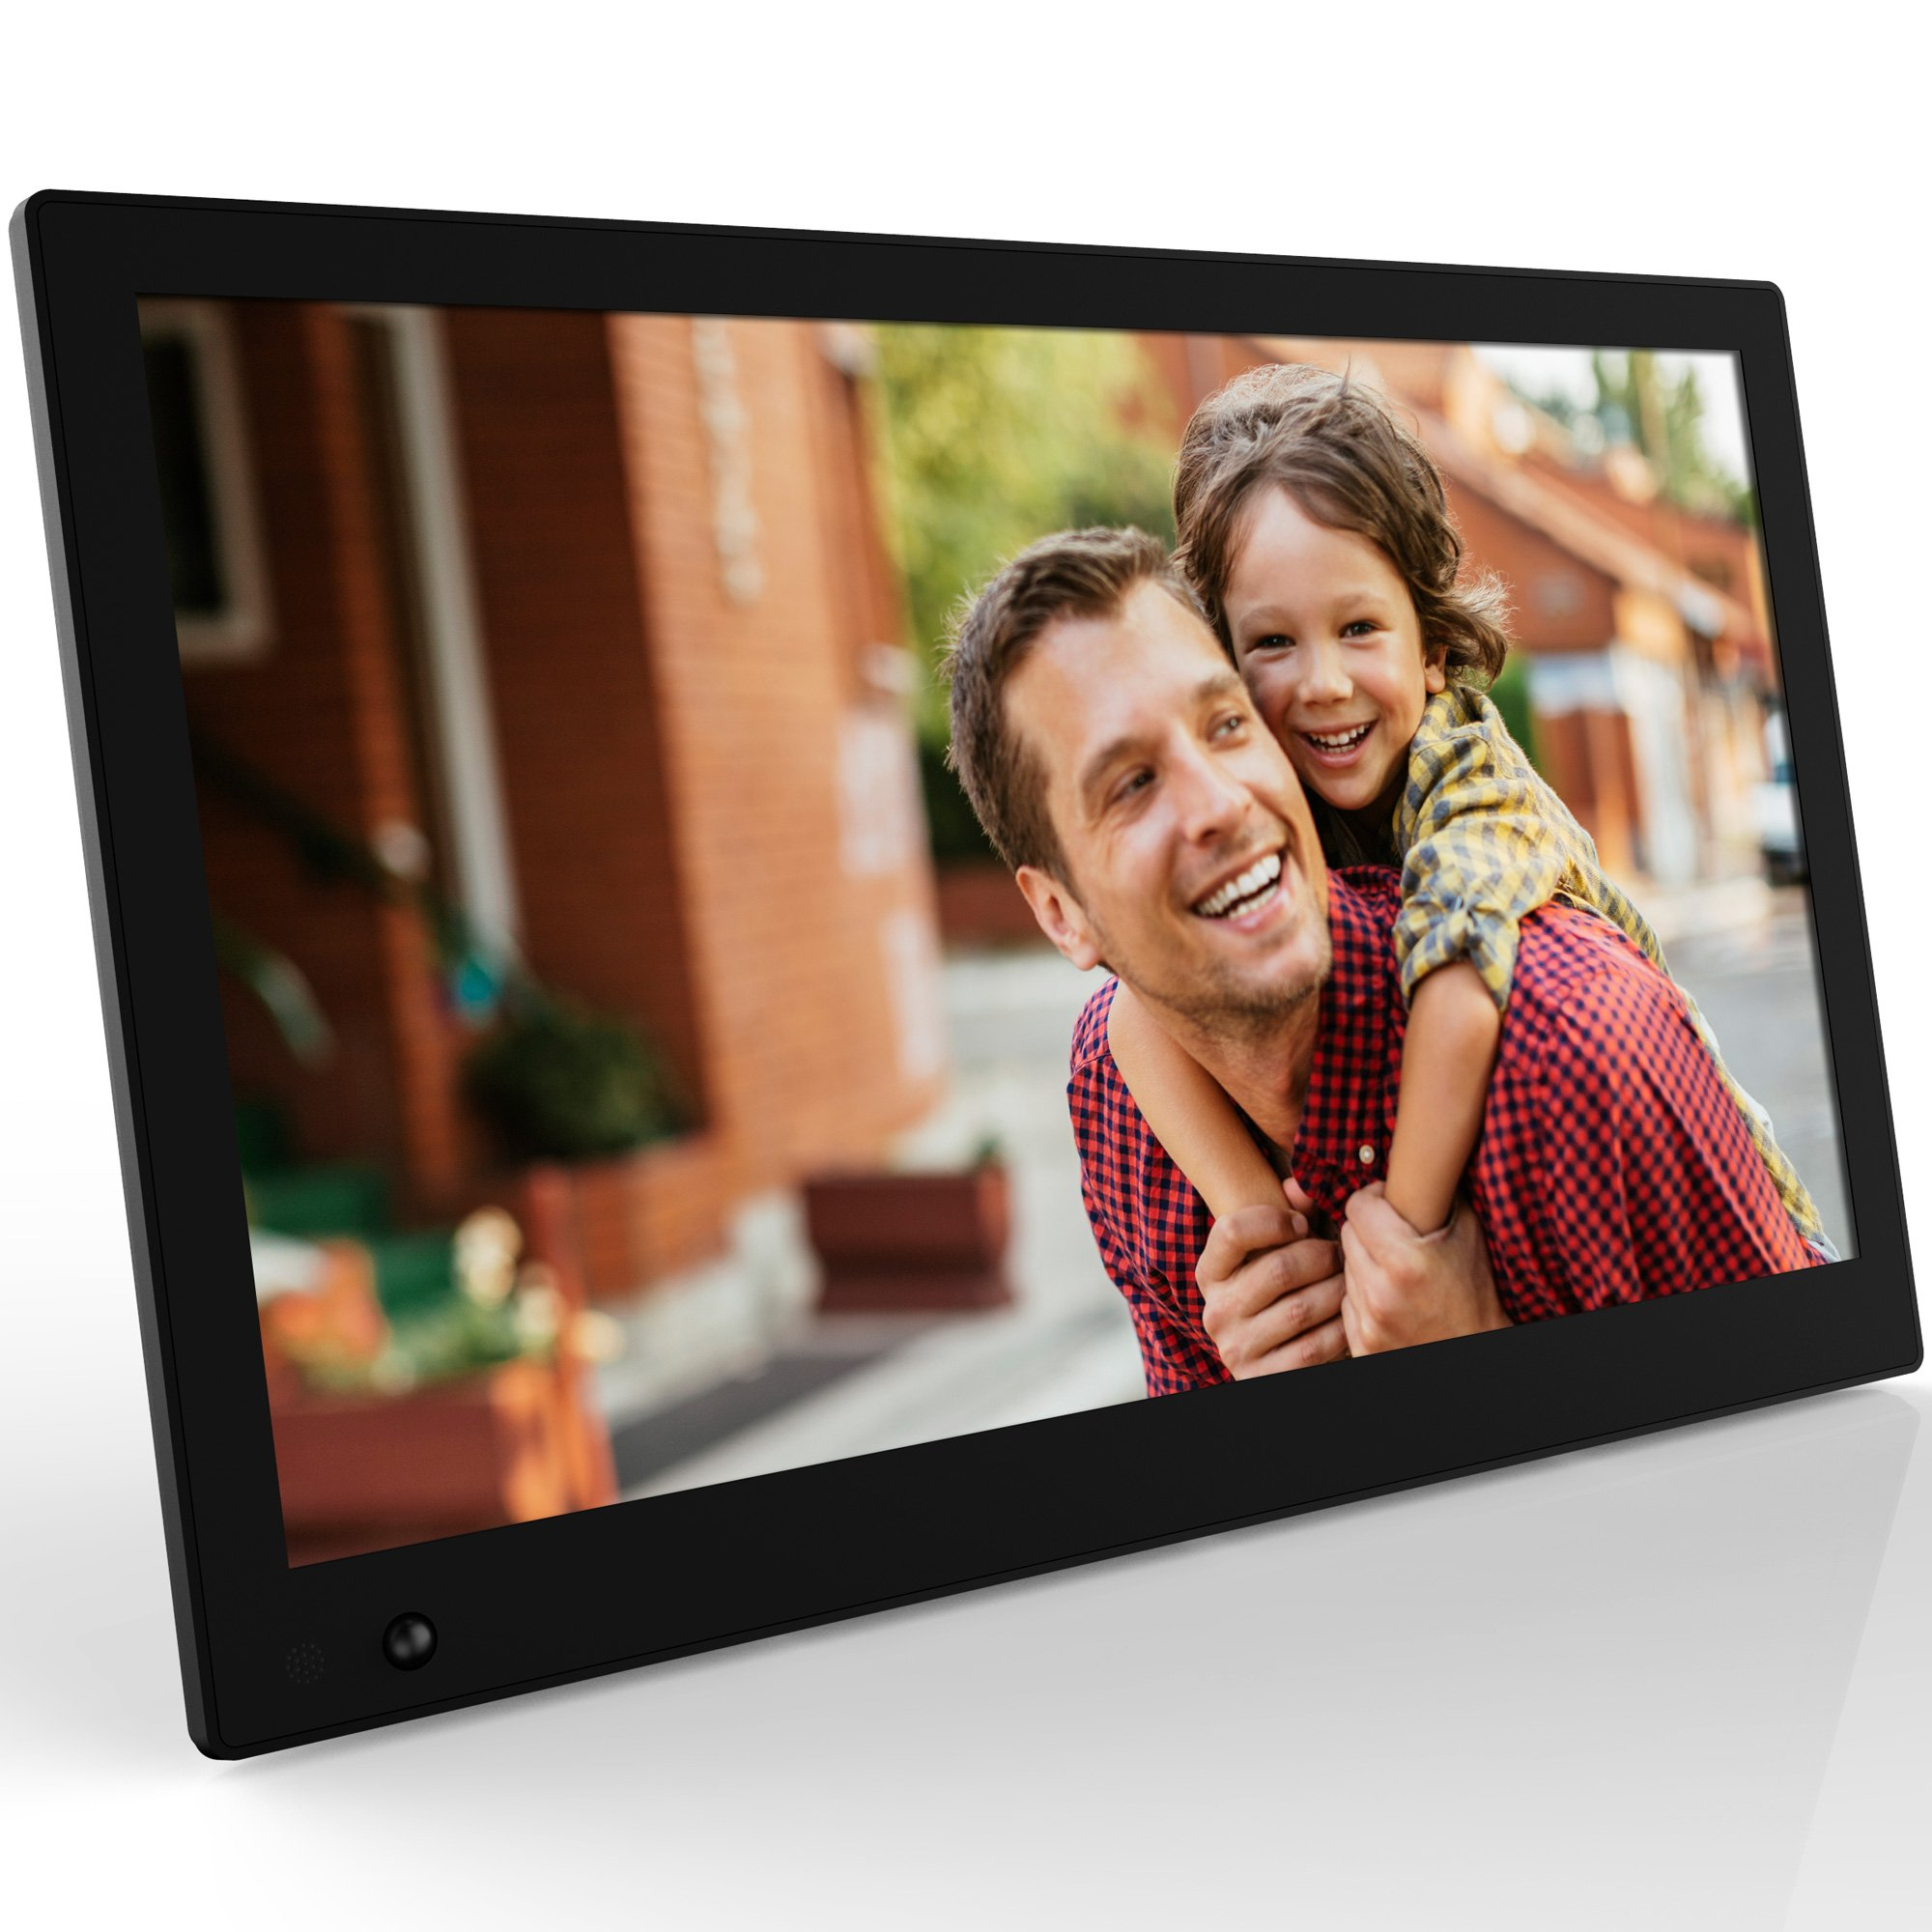 NIX Advance 17.3 Inch Digital Photo Frame X17b - Digital Picture Frame with IPS Display, Motion Sensor, USB and SD Card Slots and Remote Control by NIX (Image #2)